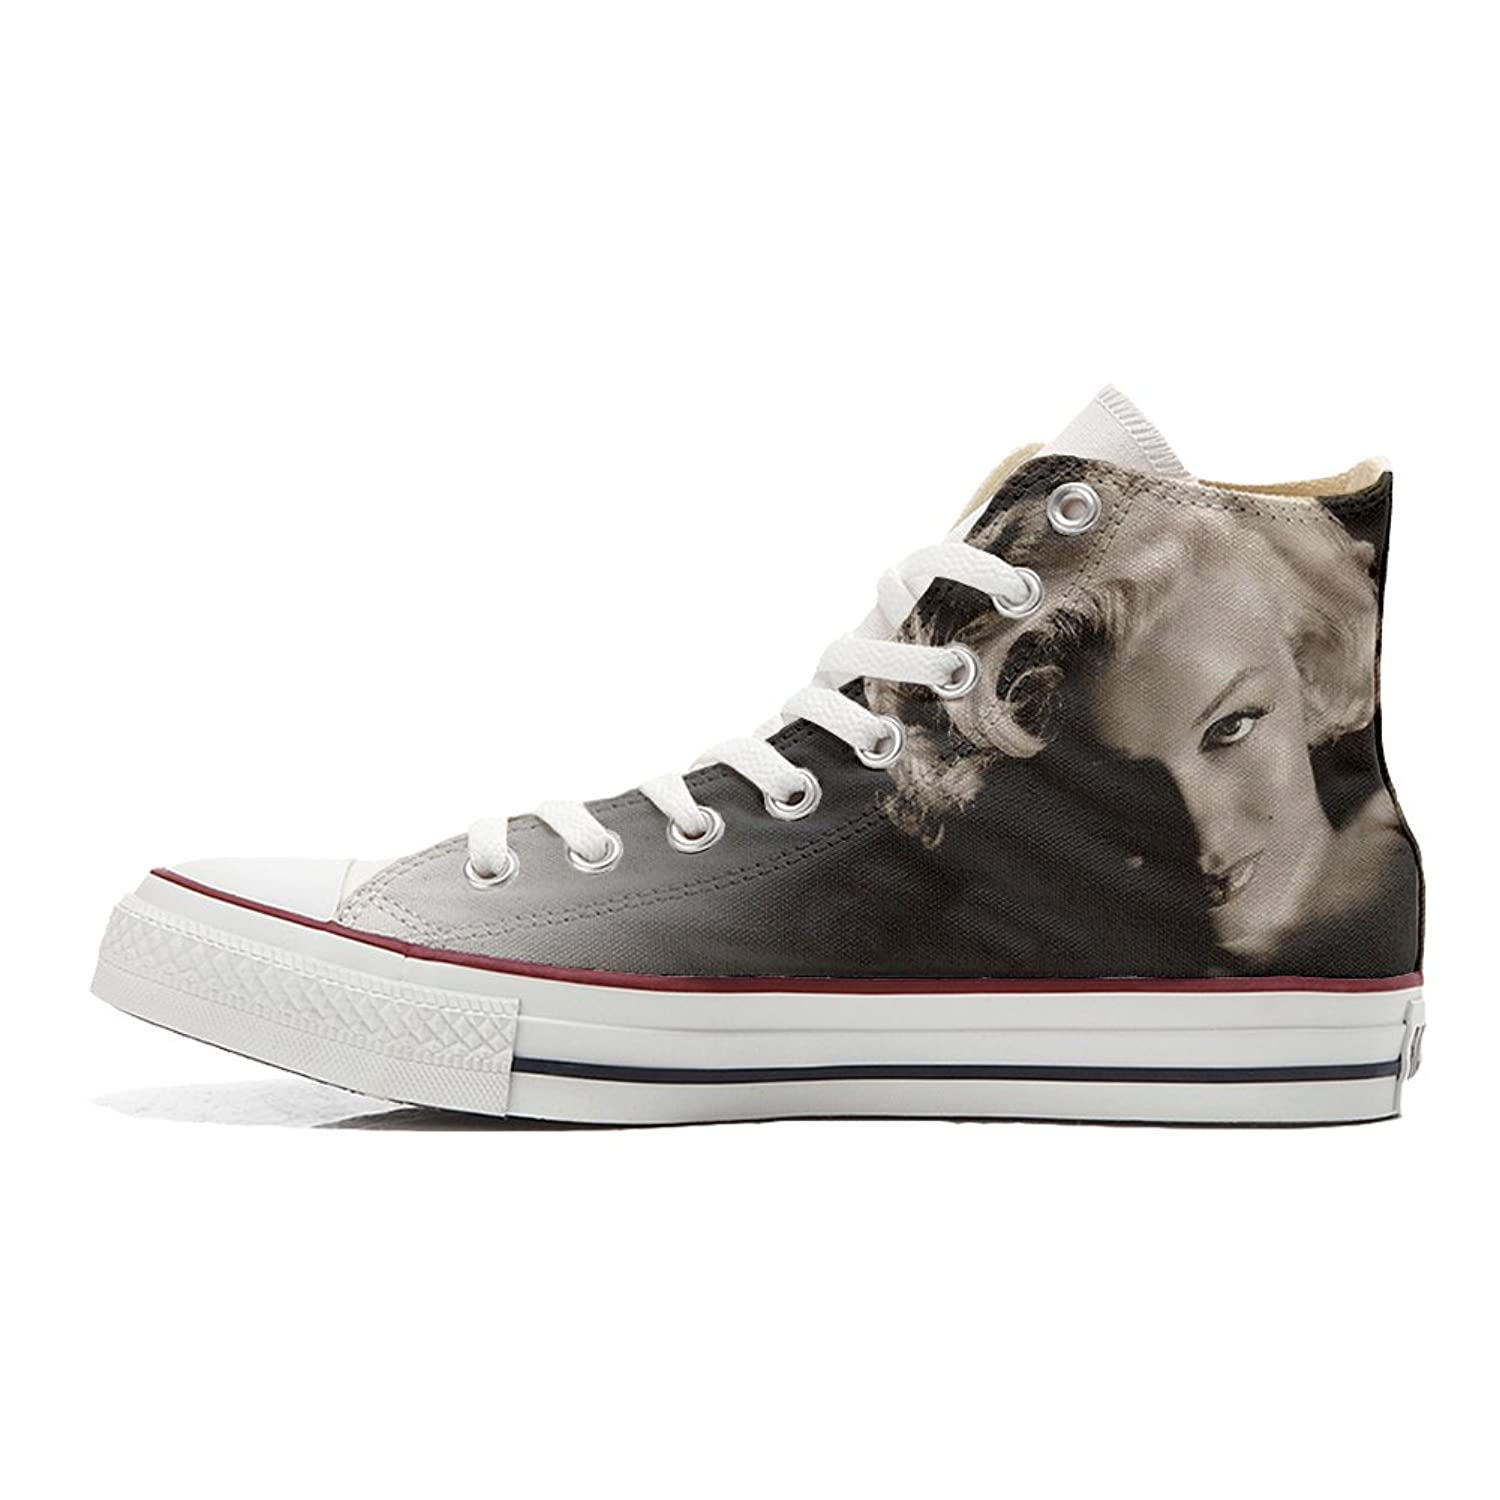 Make Your Shoes Converse Customized Adulte - chaussures coutume (produit artisanal) Chick Paysley size 38 EU uC98BDou5